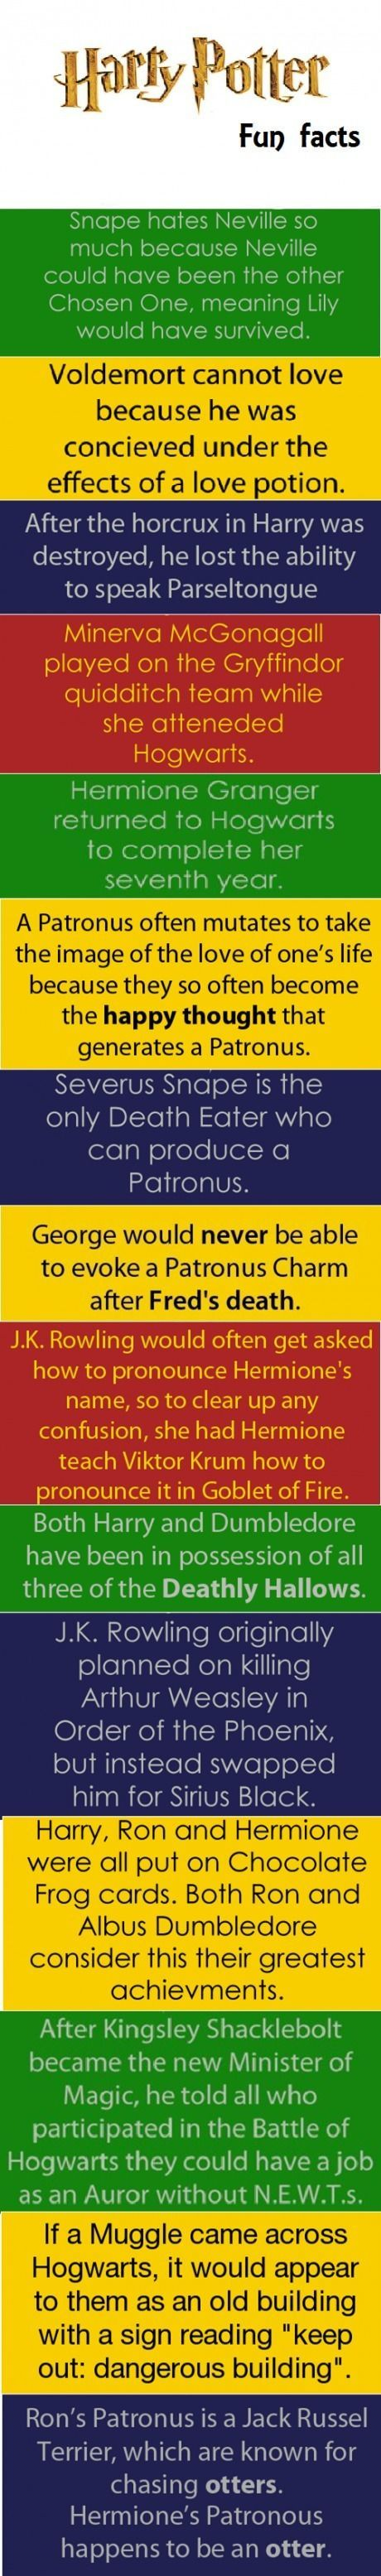 Fun Facts!: Harrypotter, Book, Potter Fun, Hp Facts, Fun Facts, Harry Potter Facts, Potterfacts, Potterhead, Funfacts